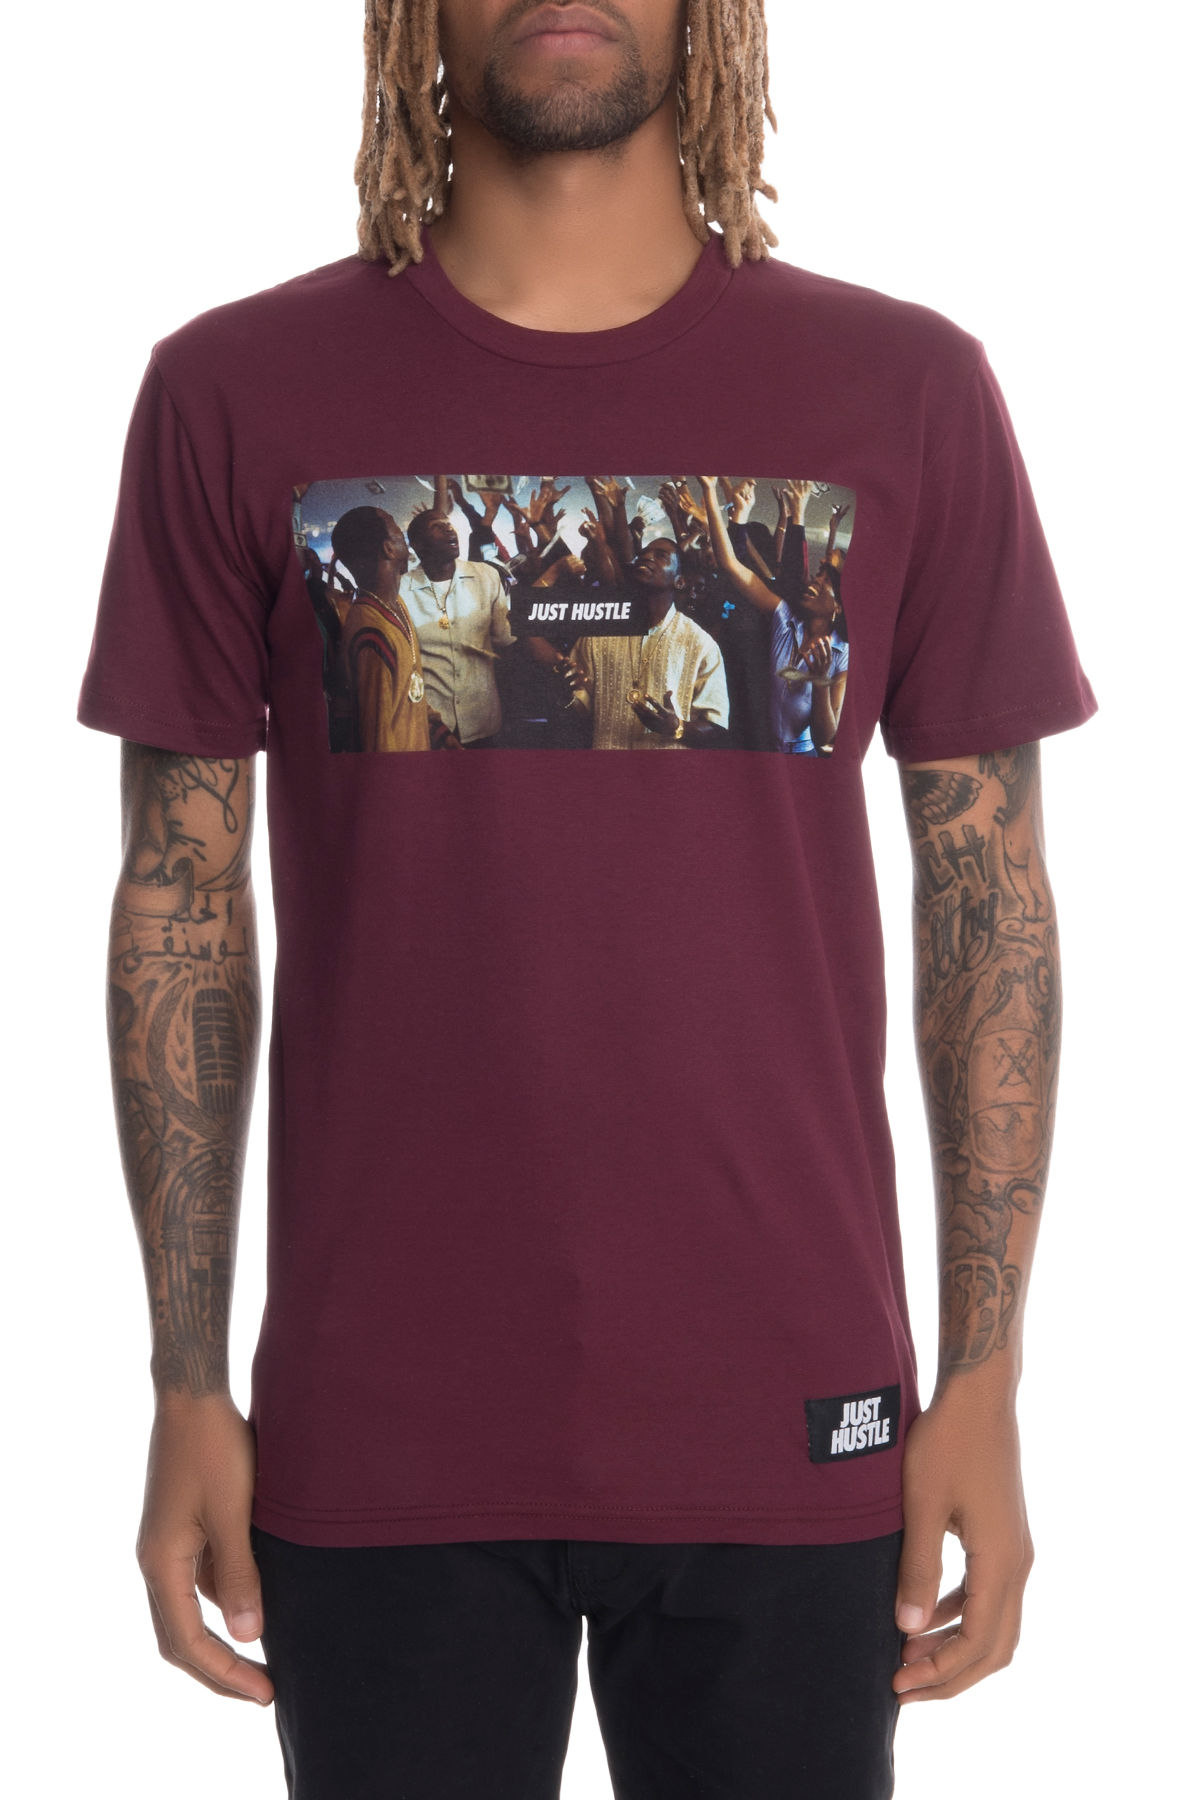 Image of The Paid In Full Short Sleeve Tee in Burgundy